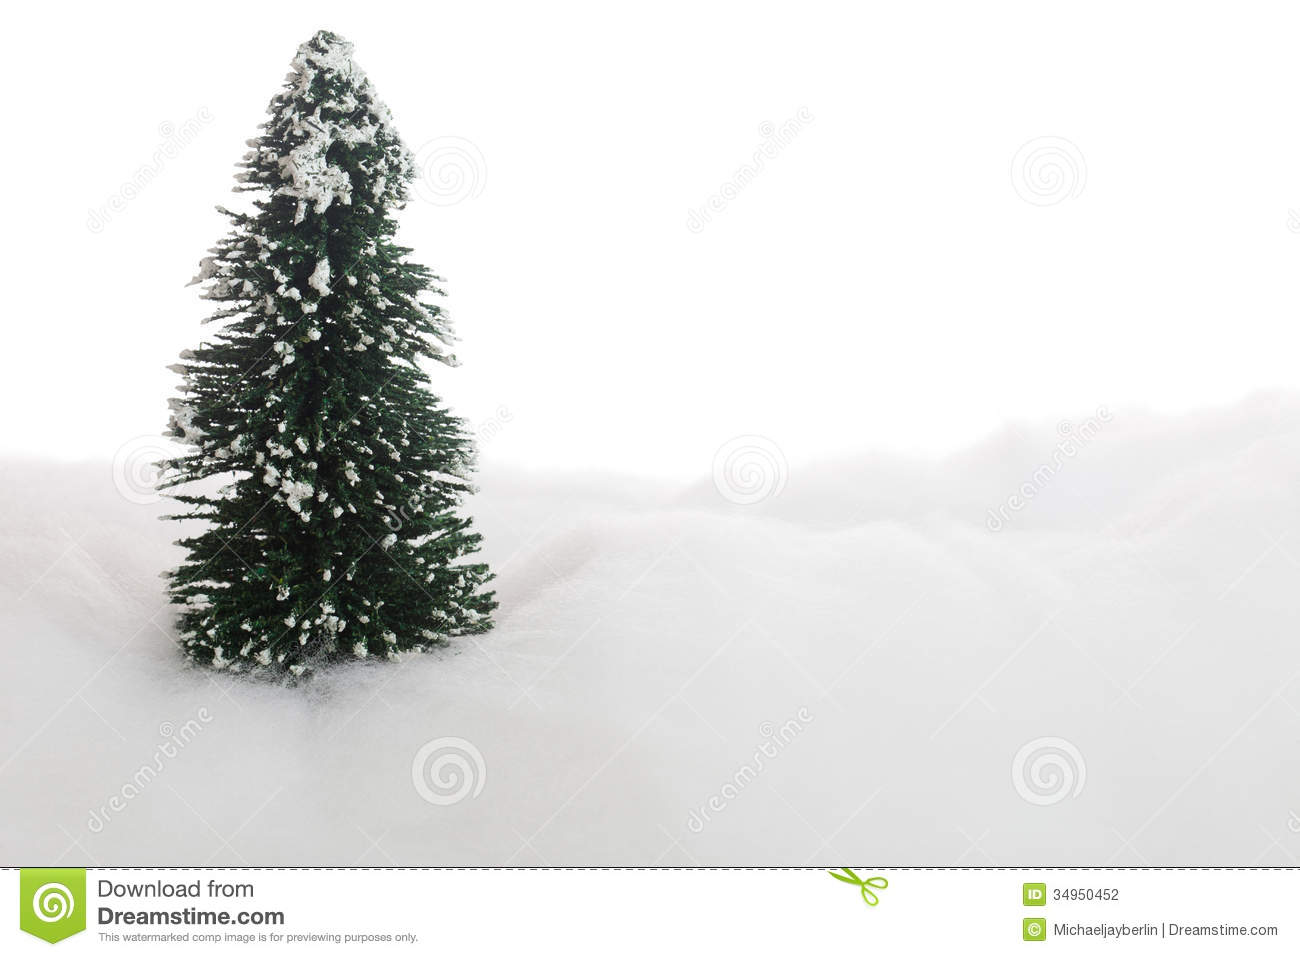 Symbolic Christmas Tree In The Snow Stock Photo Image Of Cutout